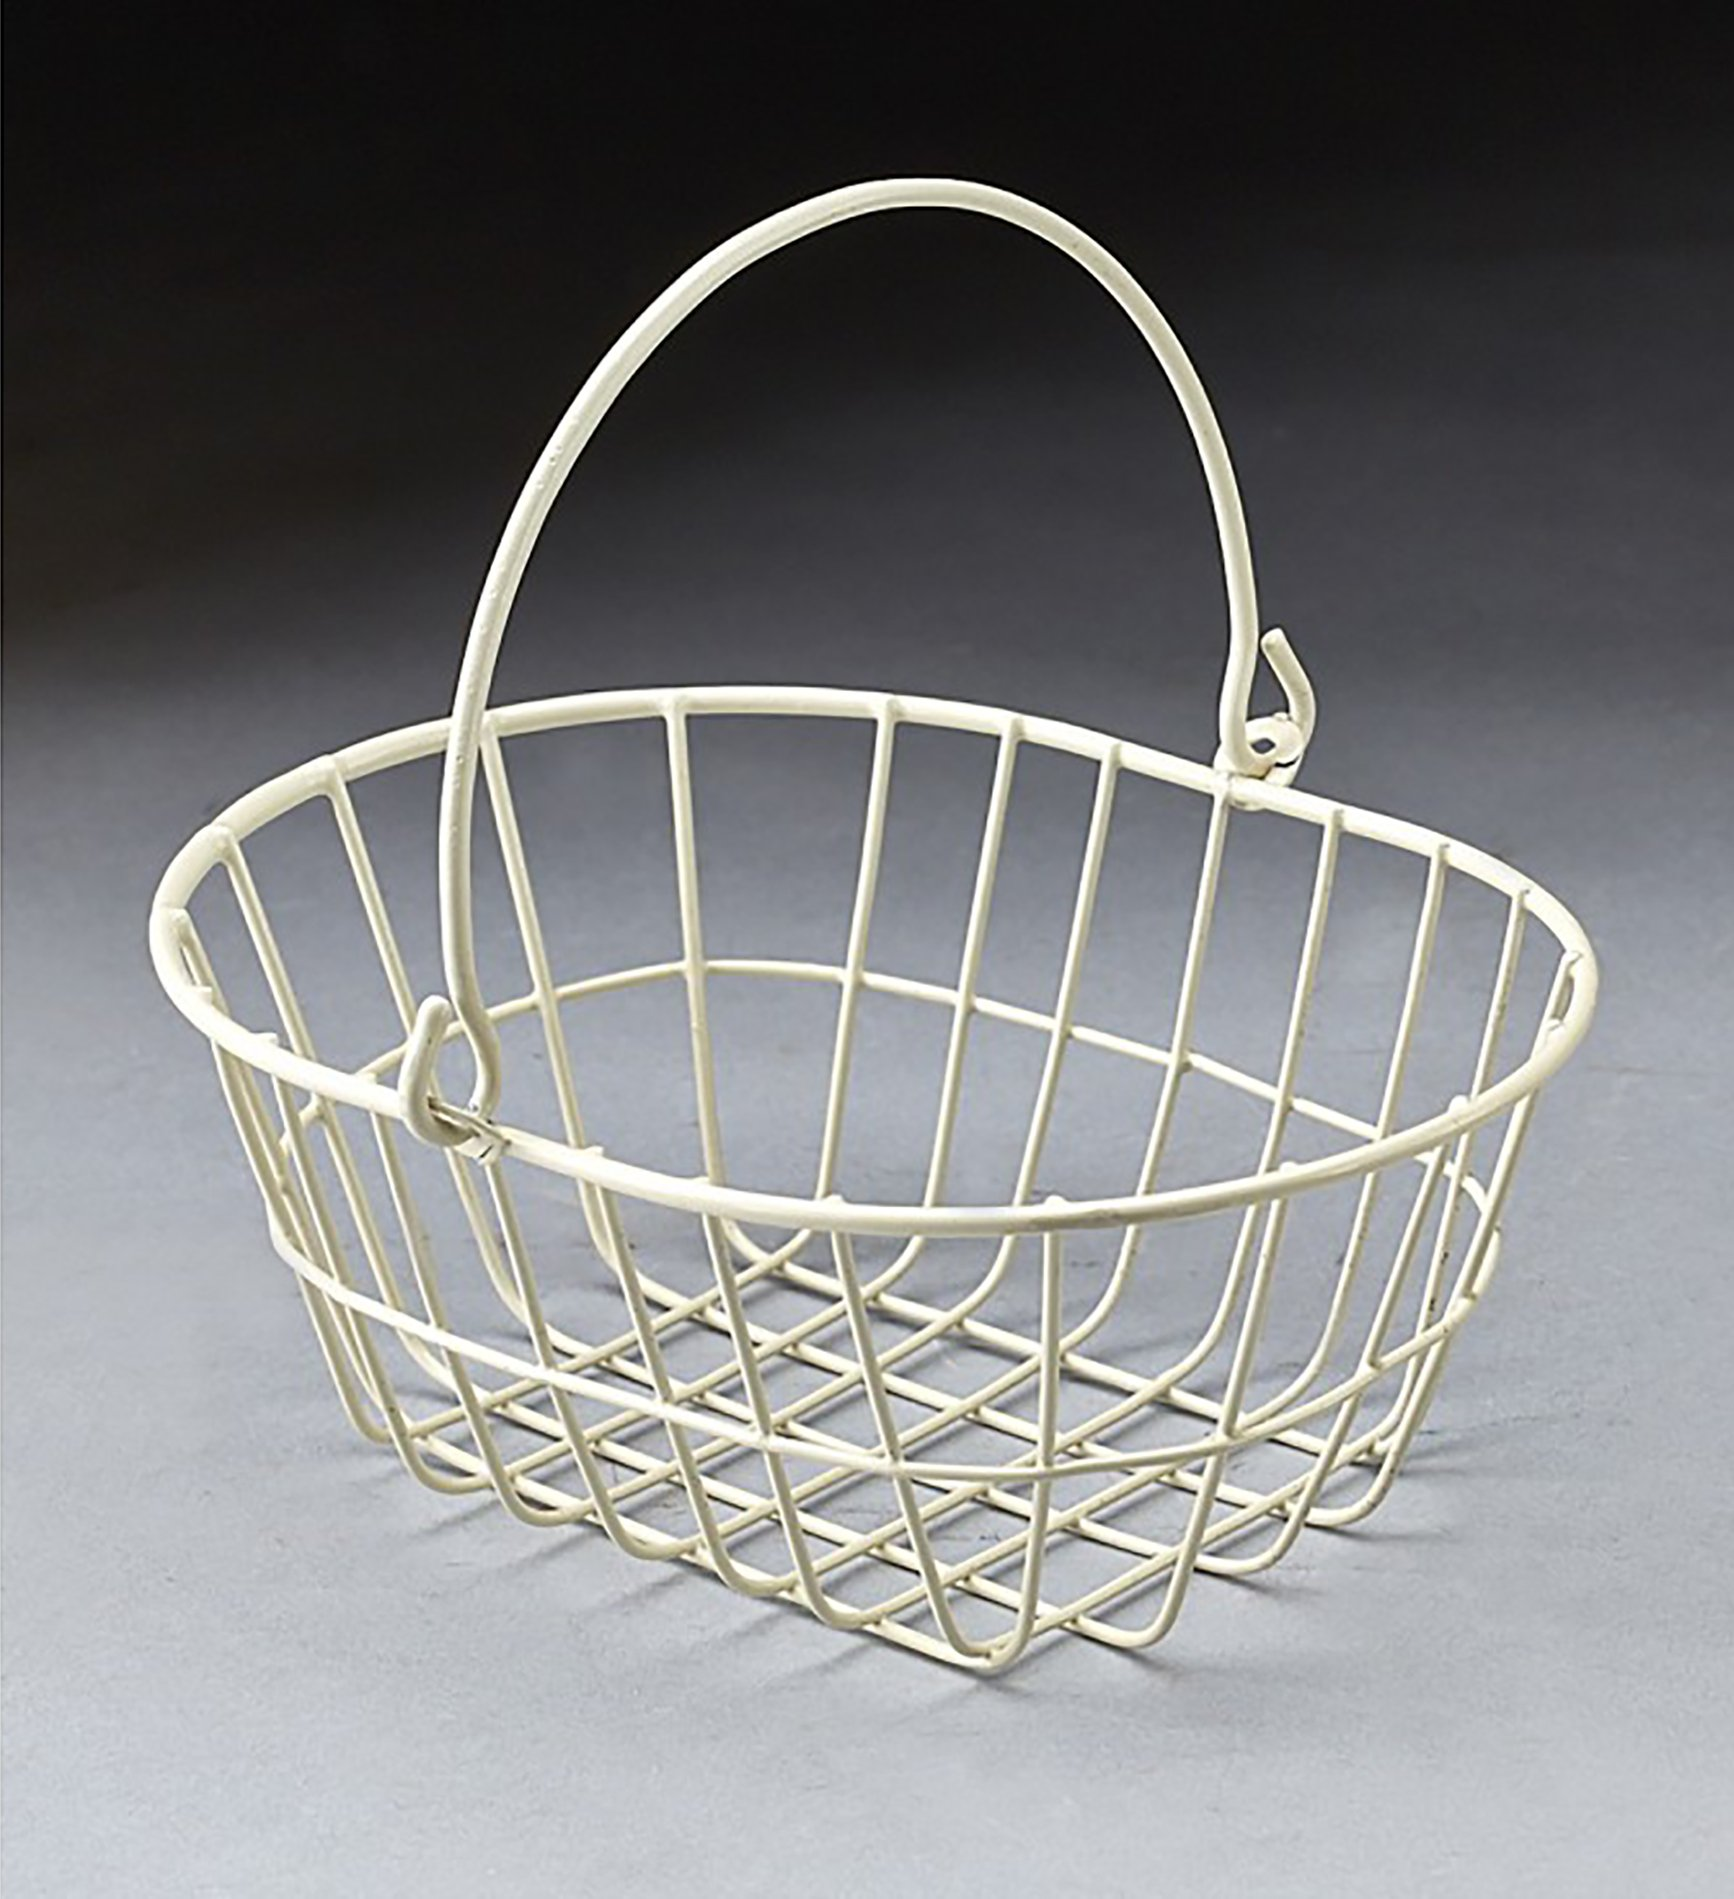 Amazon.com : White wire metal rectanguler basket with drop handle : Baby